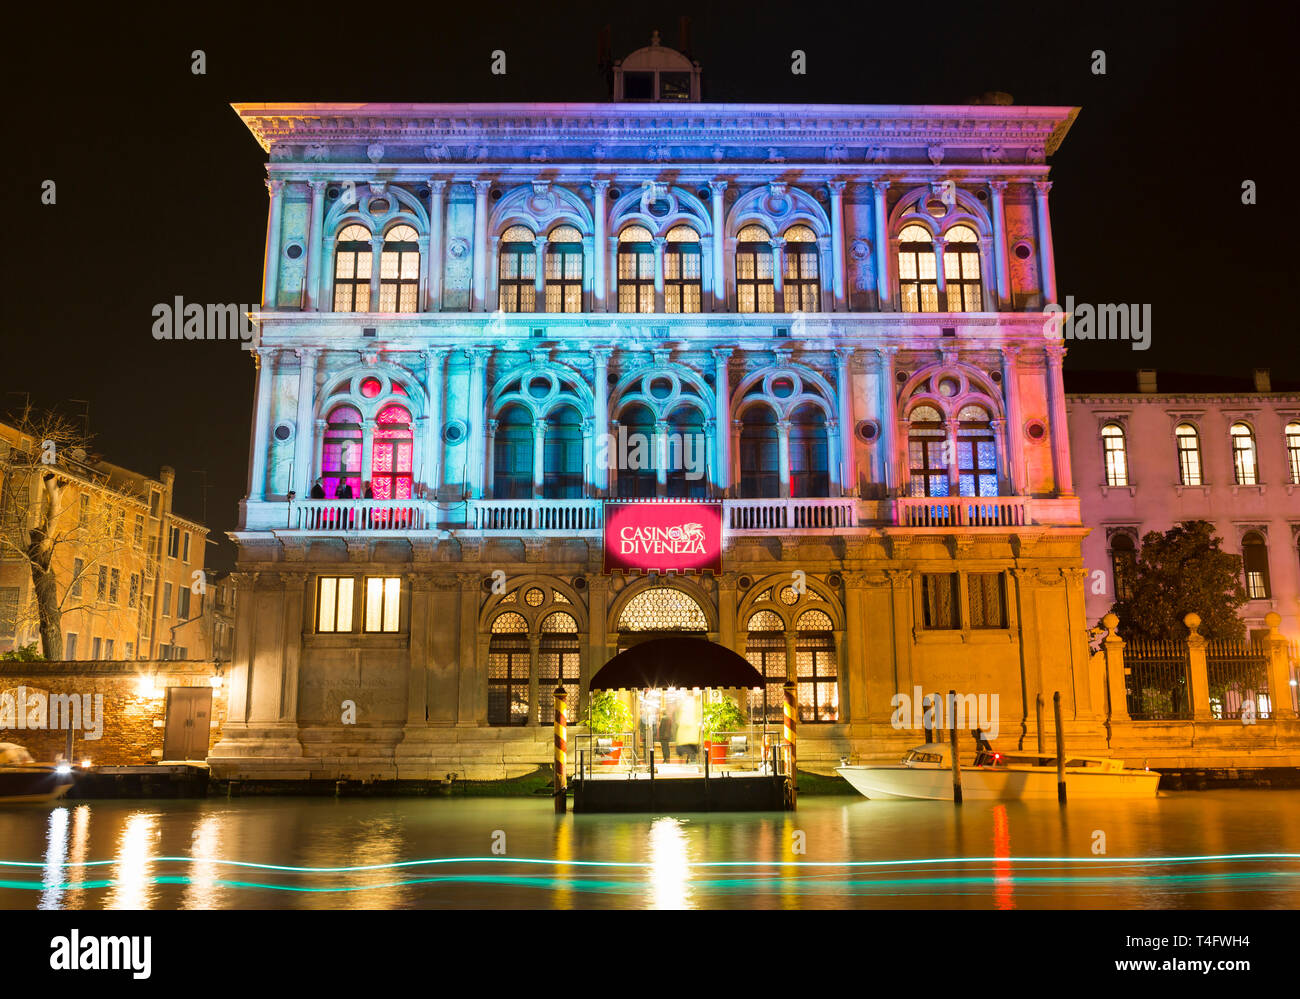 Casino di Venezia illuminated at night, Ca' Vendramin Calergi, Grand Canal, Venice, Italy Stock Photo